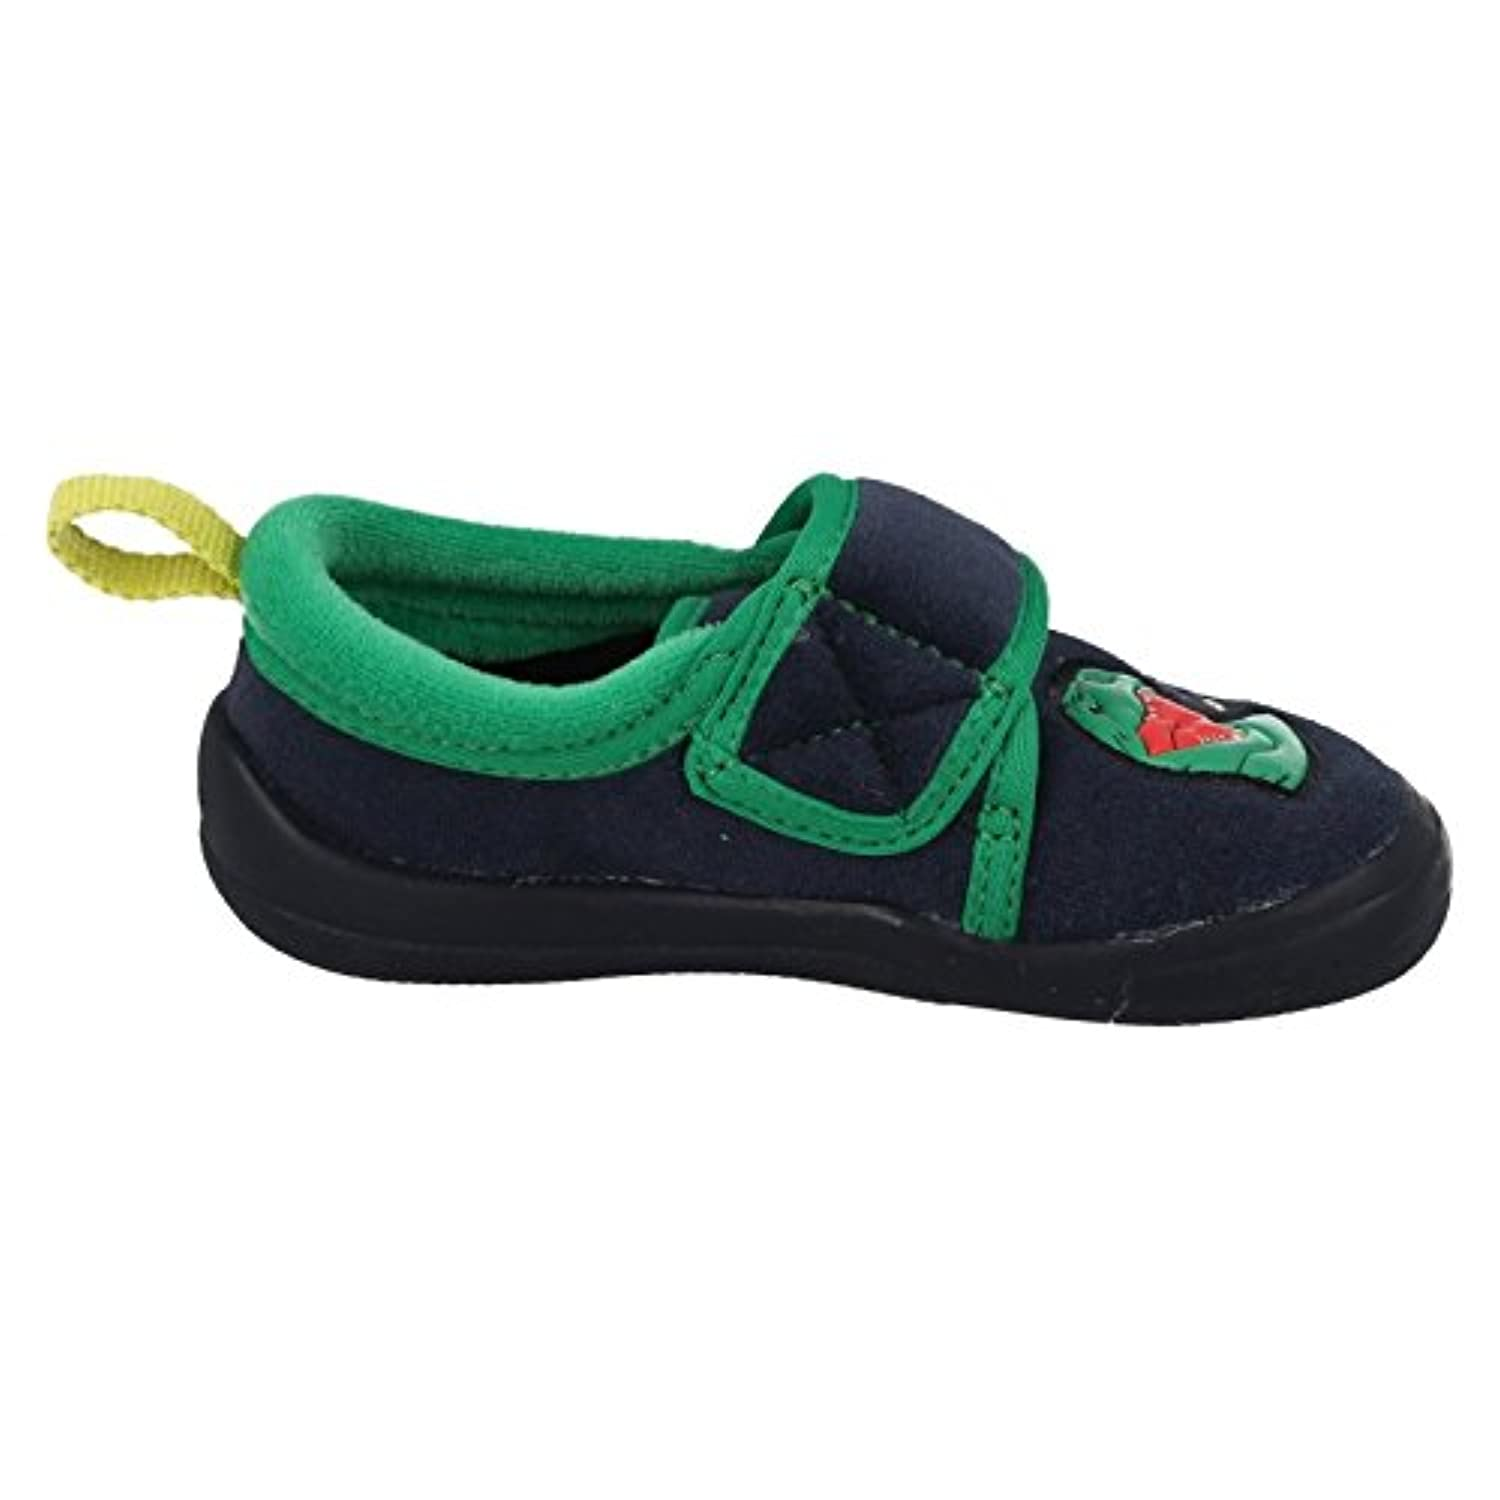 Clarks Cuba Stompo Inf Boy's Slippers in Navy Synthetic 10.5 Navy Synthetic